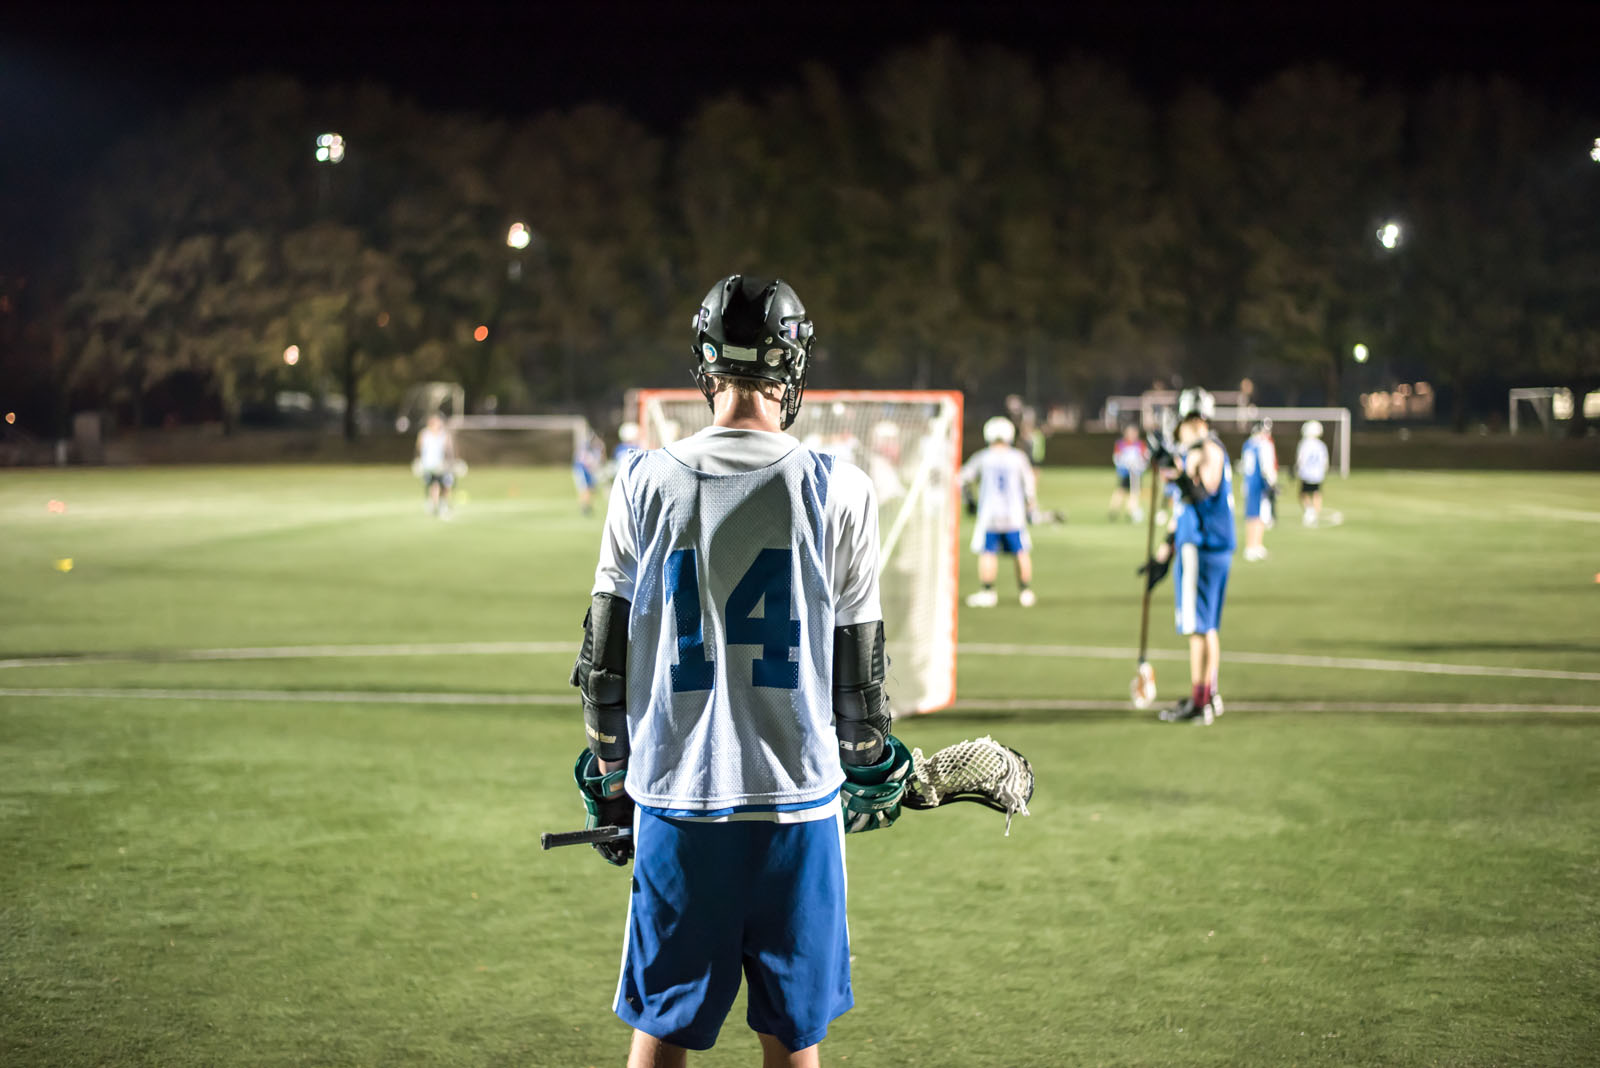 The men's lacrosse team placed fourth in the Canada West Field Lacrosse League in 2014.